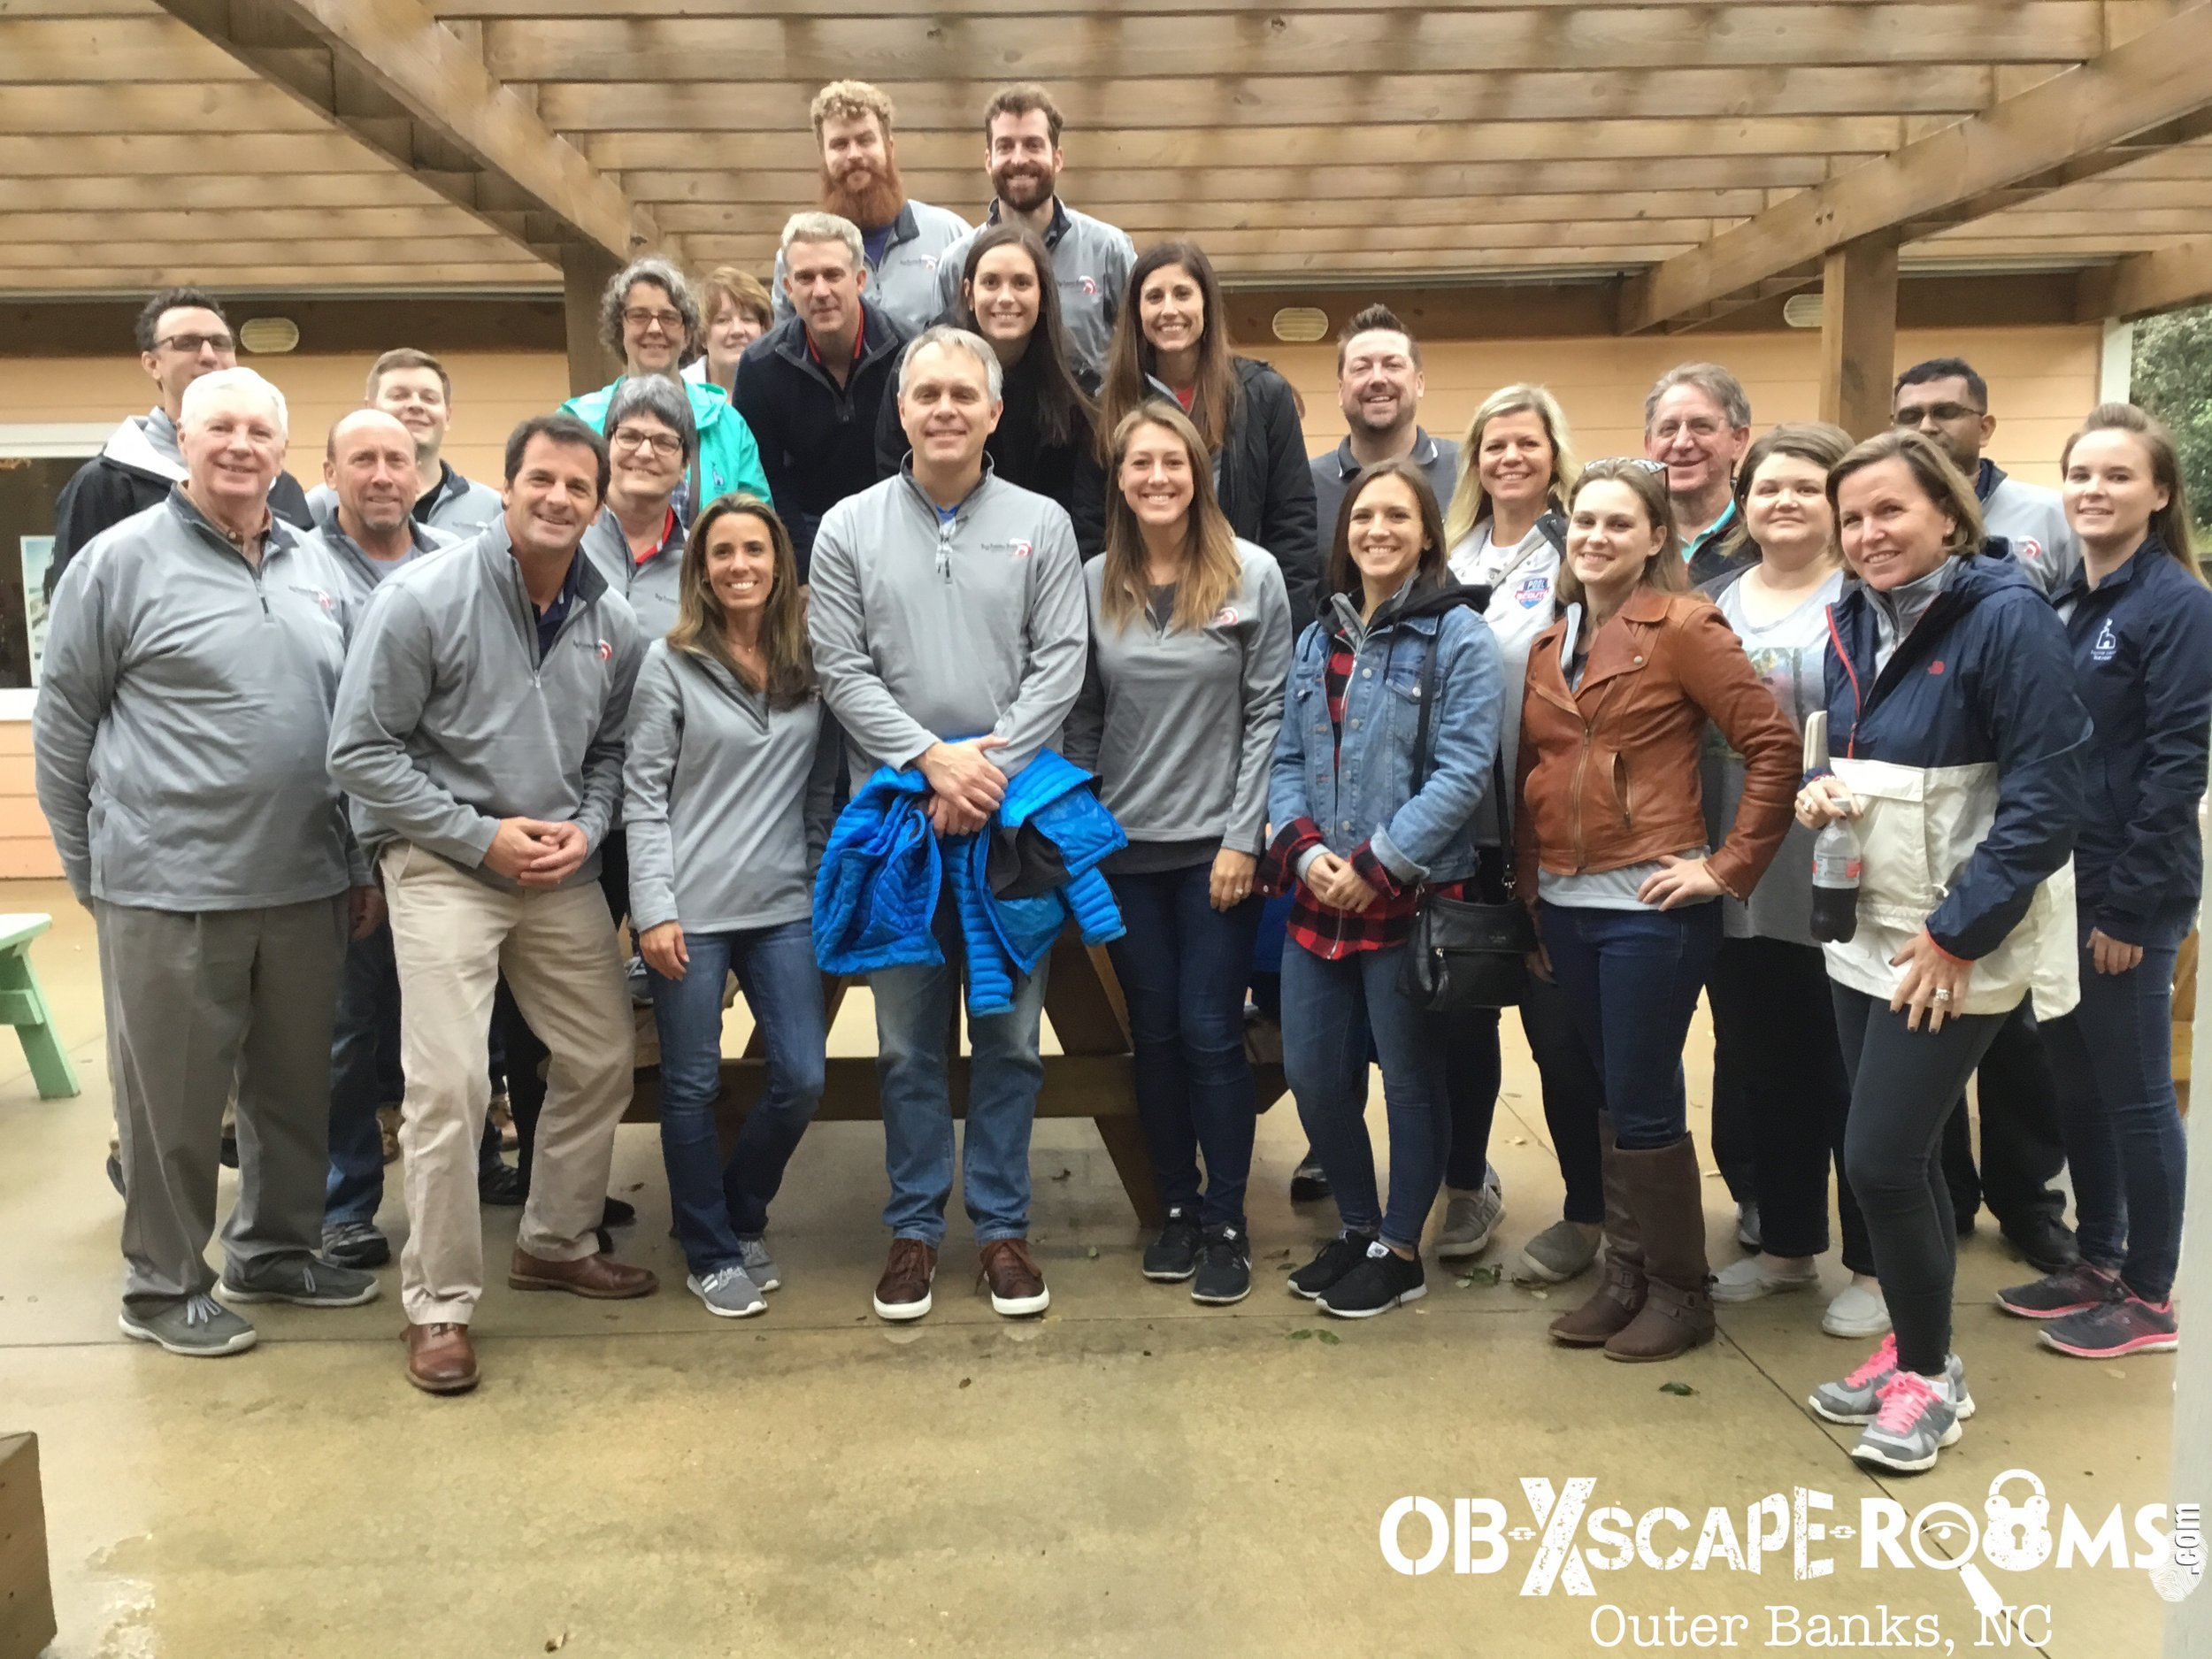 Corporate Offsite Escape Room in Outer Banks